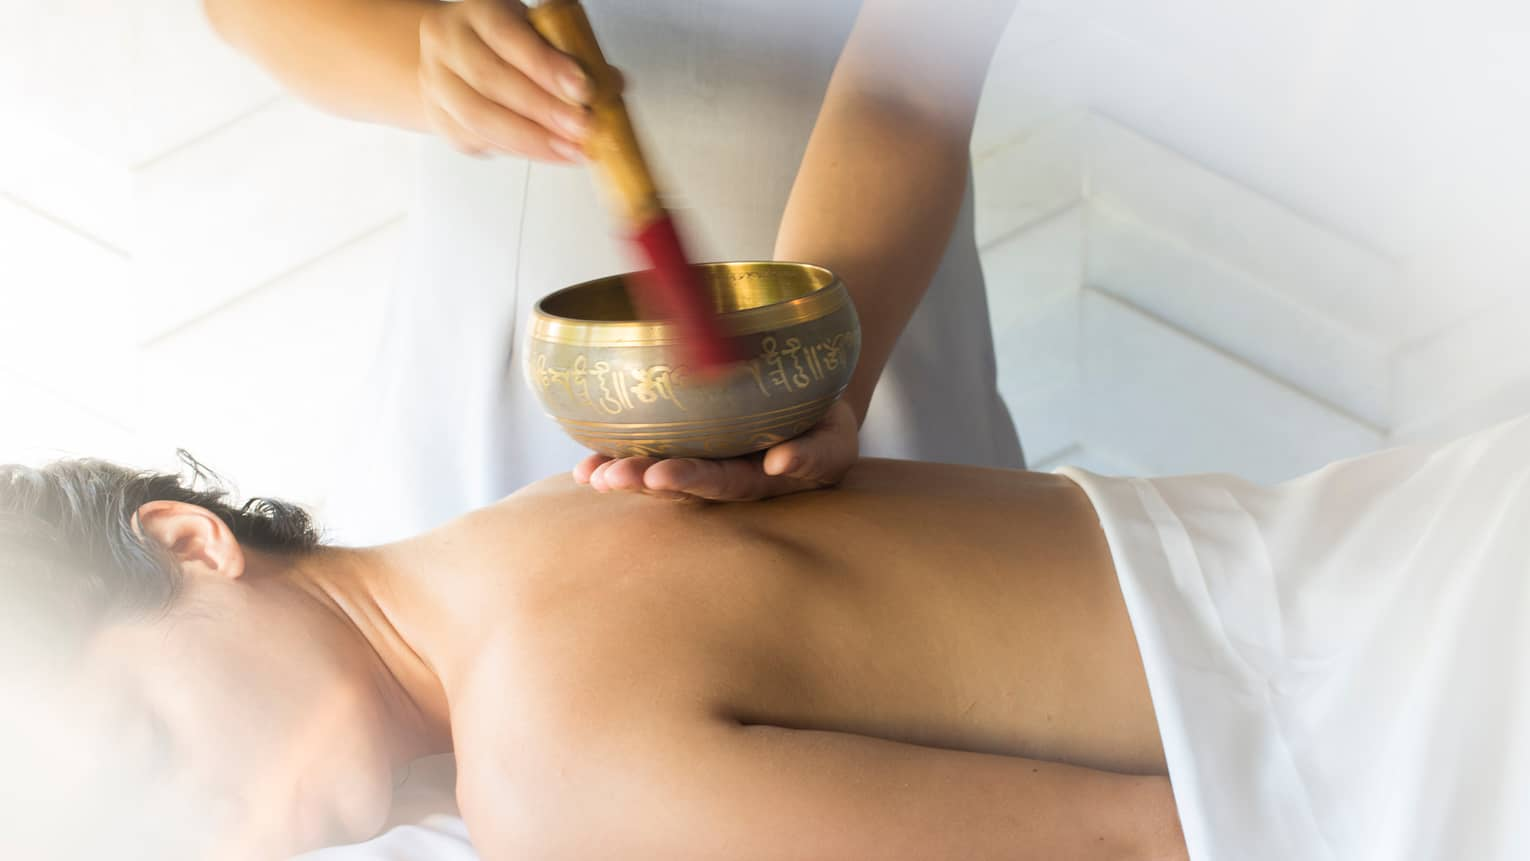 Hands play brass singing bowl over bare back of woman lying on massage table